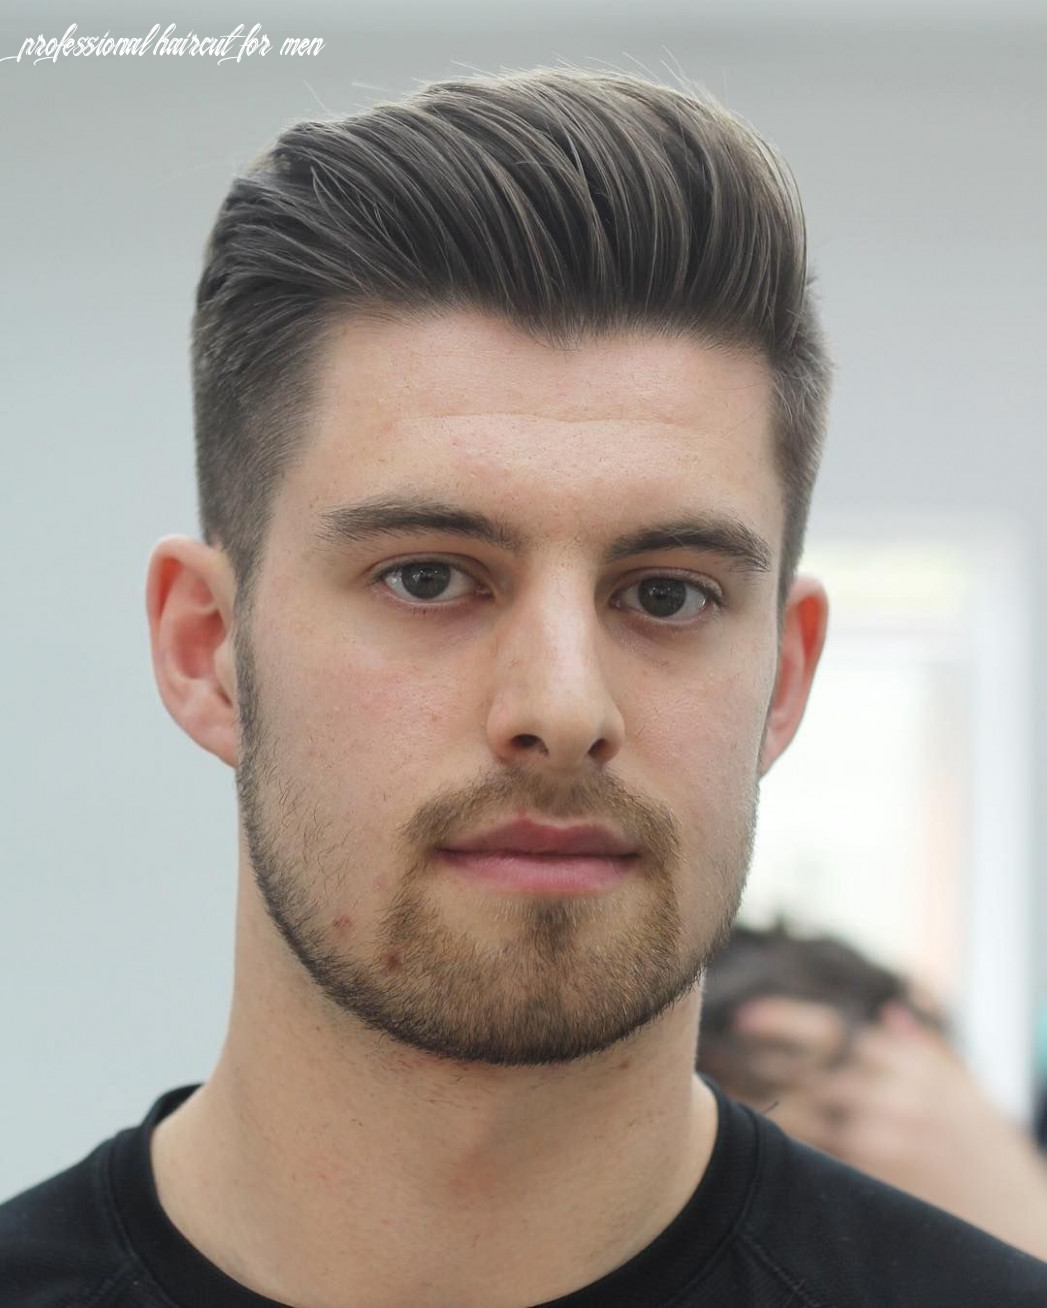 Cool 8 classic professional hairstyles for men do your best